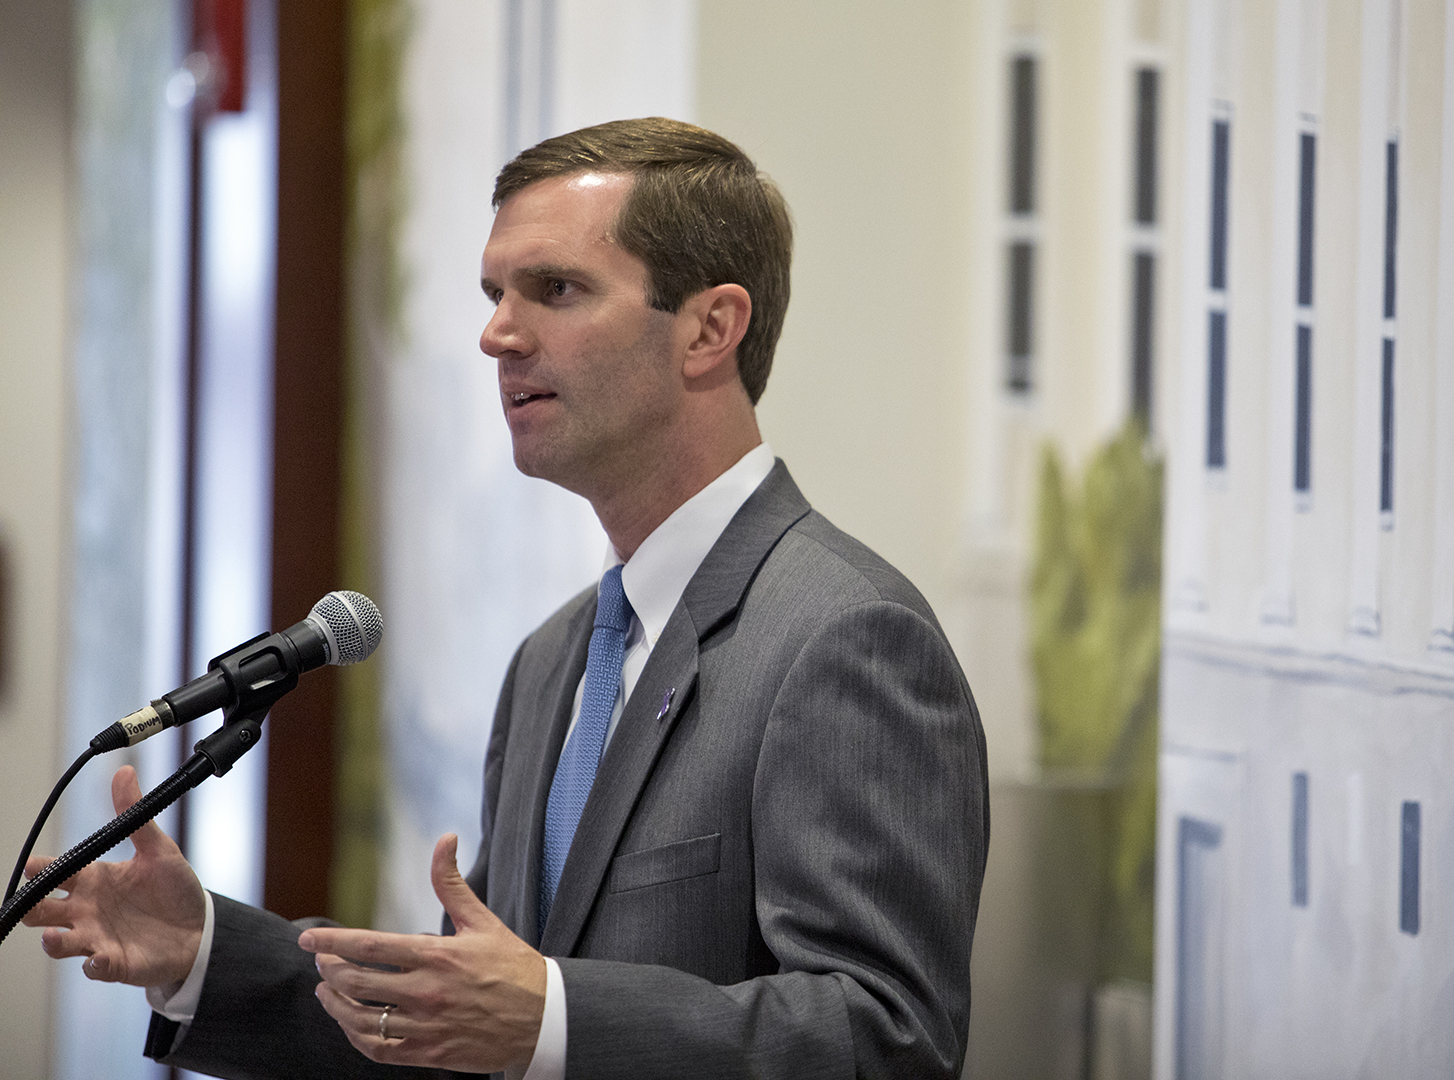 Attorney General Andy Beshear discusses how a community should remain safe by keeping violence out during the Proclamation Signing in the first floor of Downing Student Union on Oct. 09, in Bowling Green.